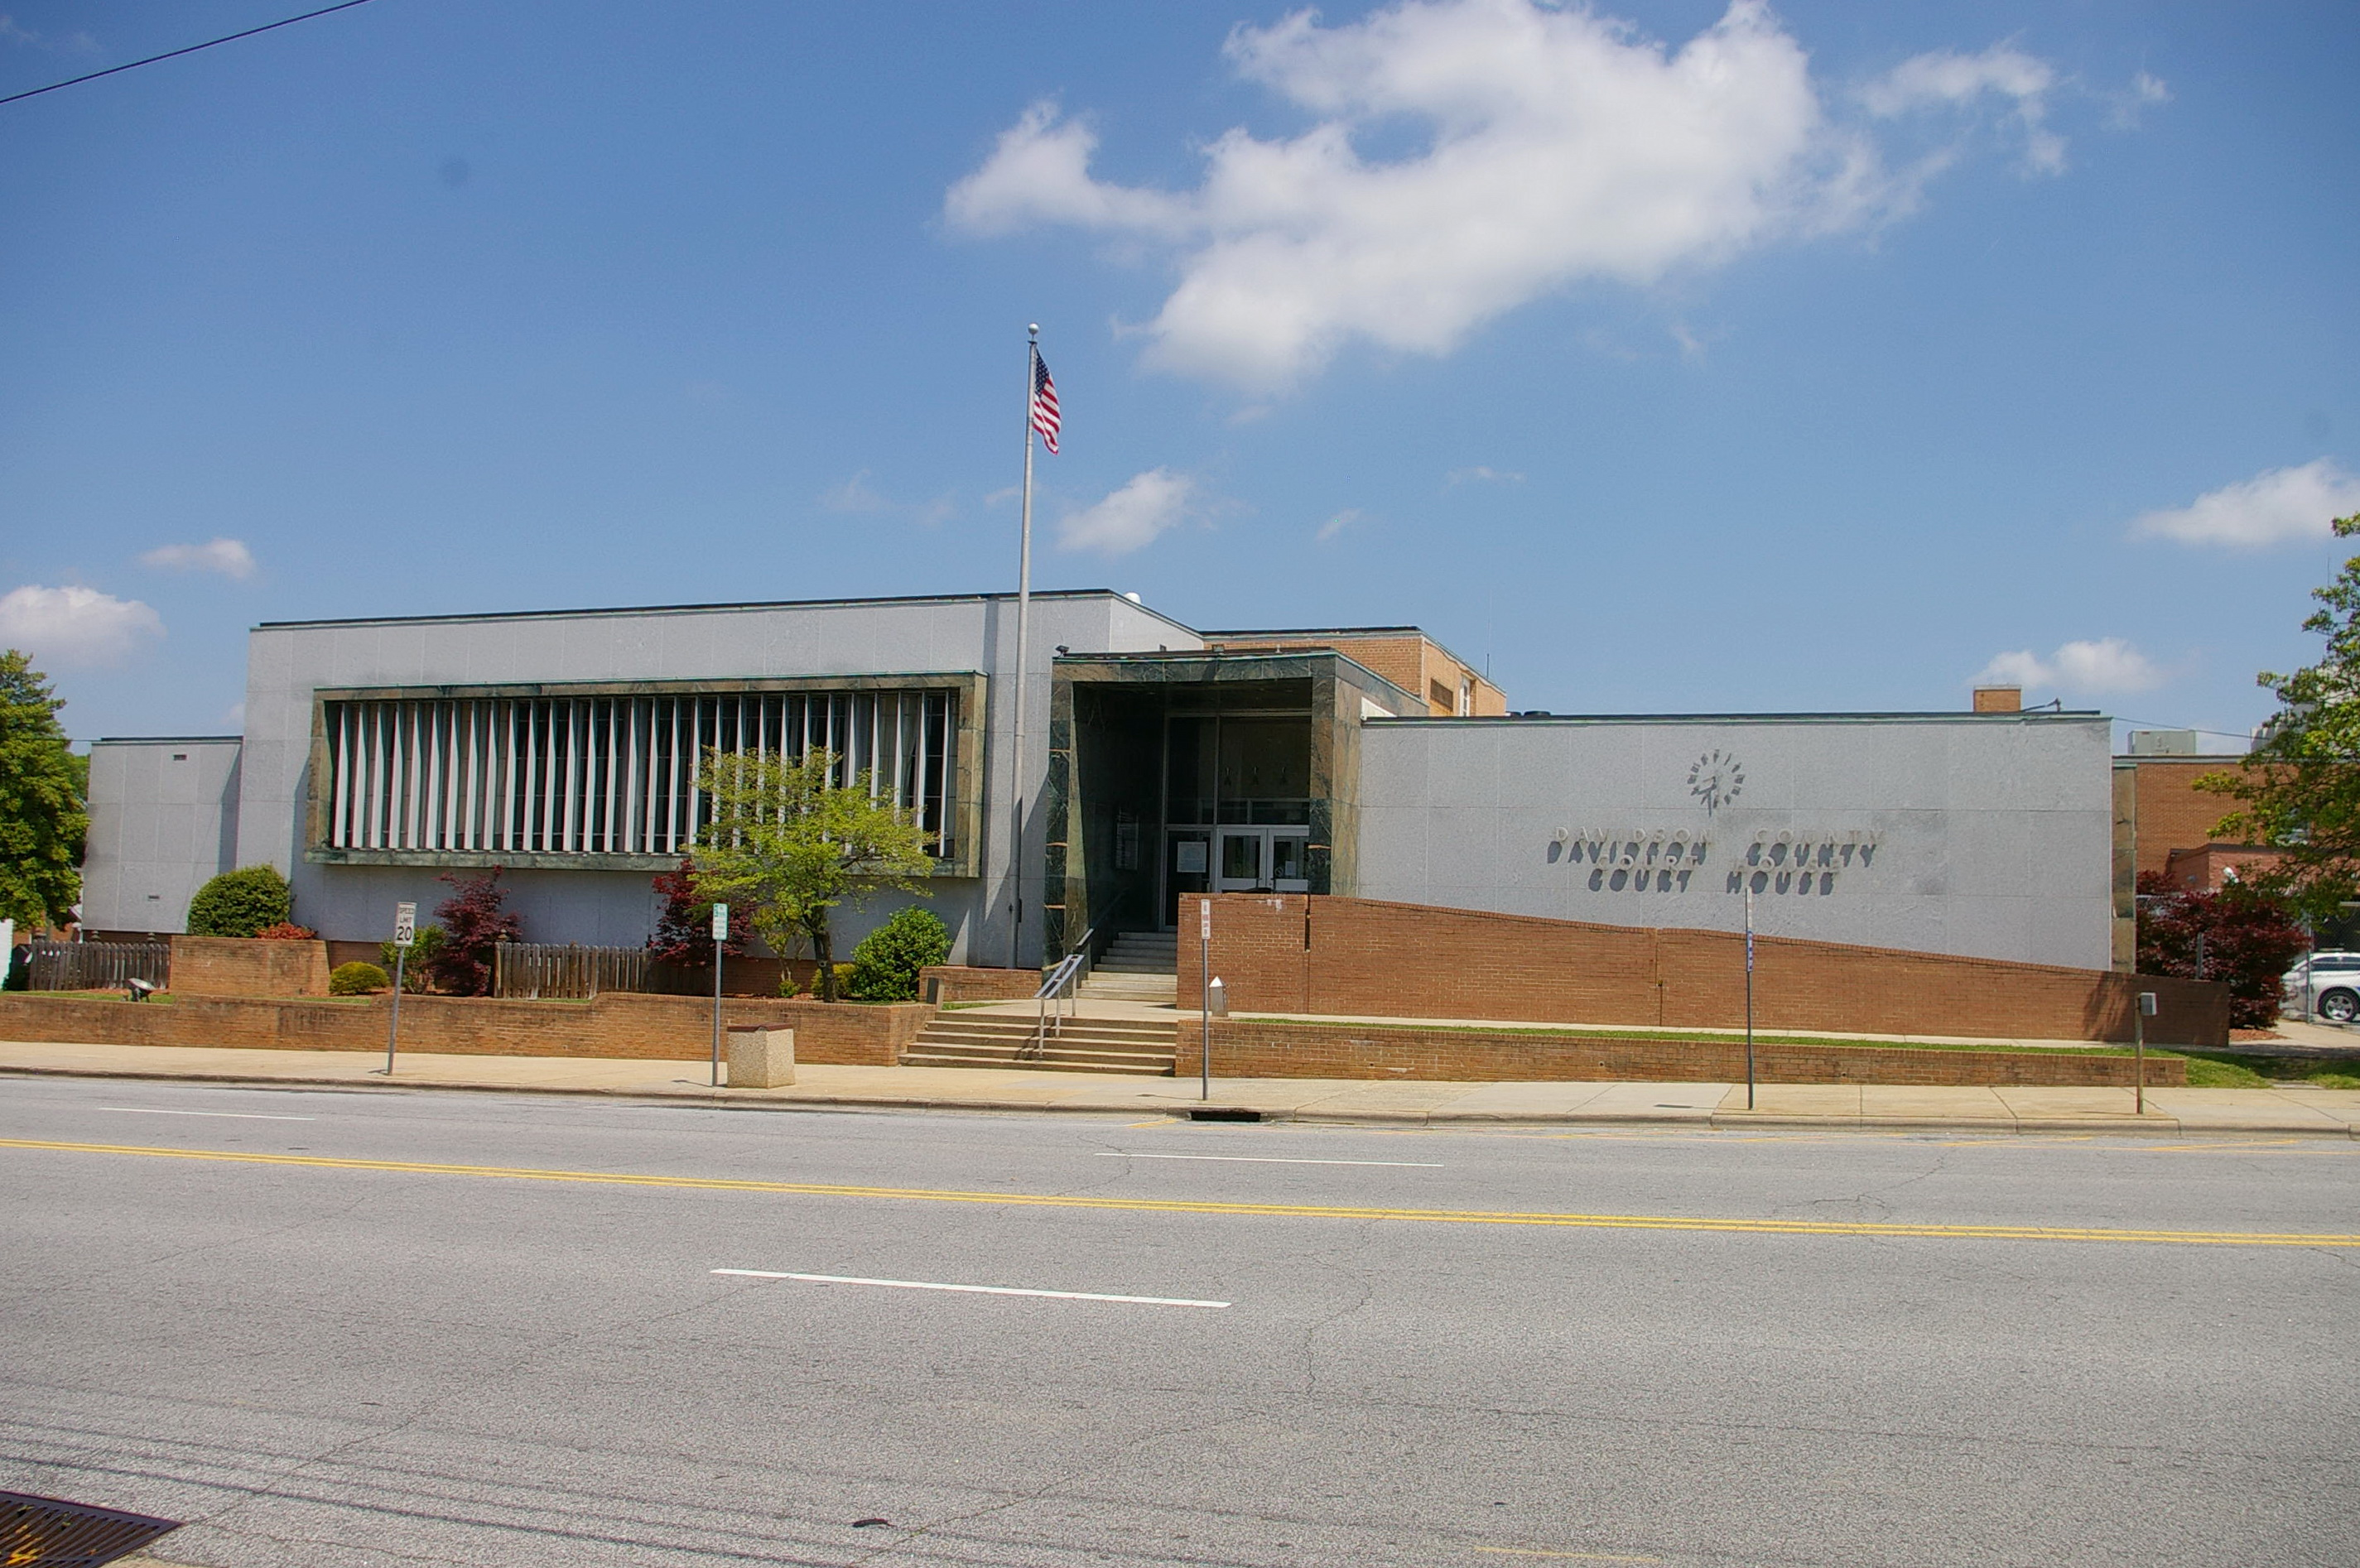 Davidson County Clerk Of Superior Court S Office Change In Hours Open To The Public North Carolina Judicial Branch